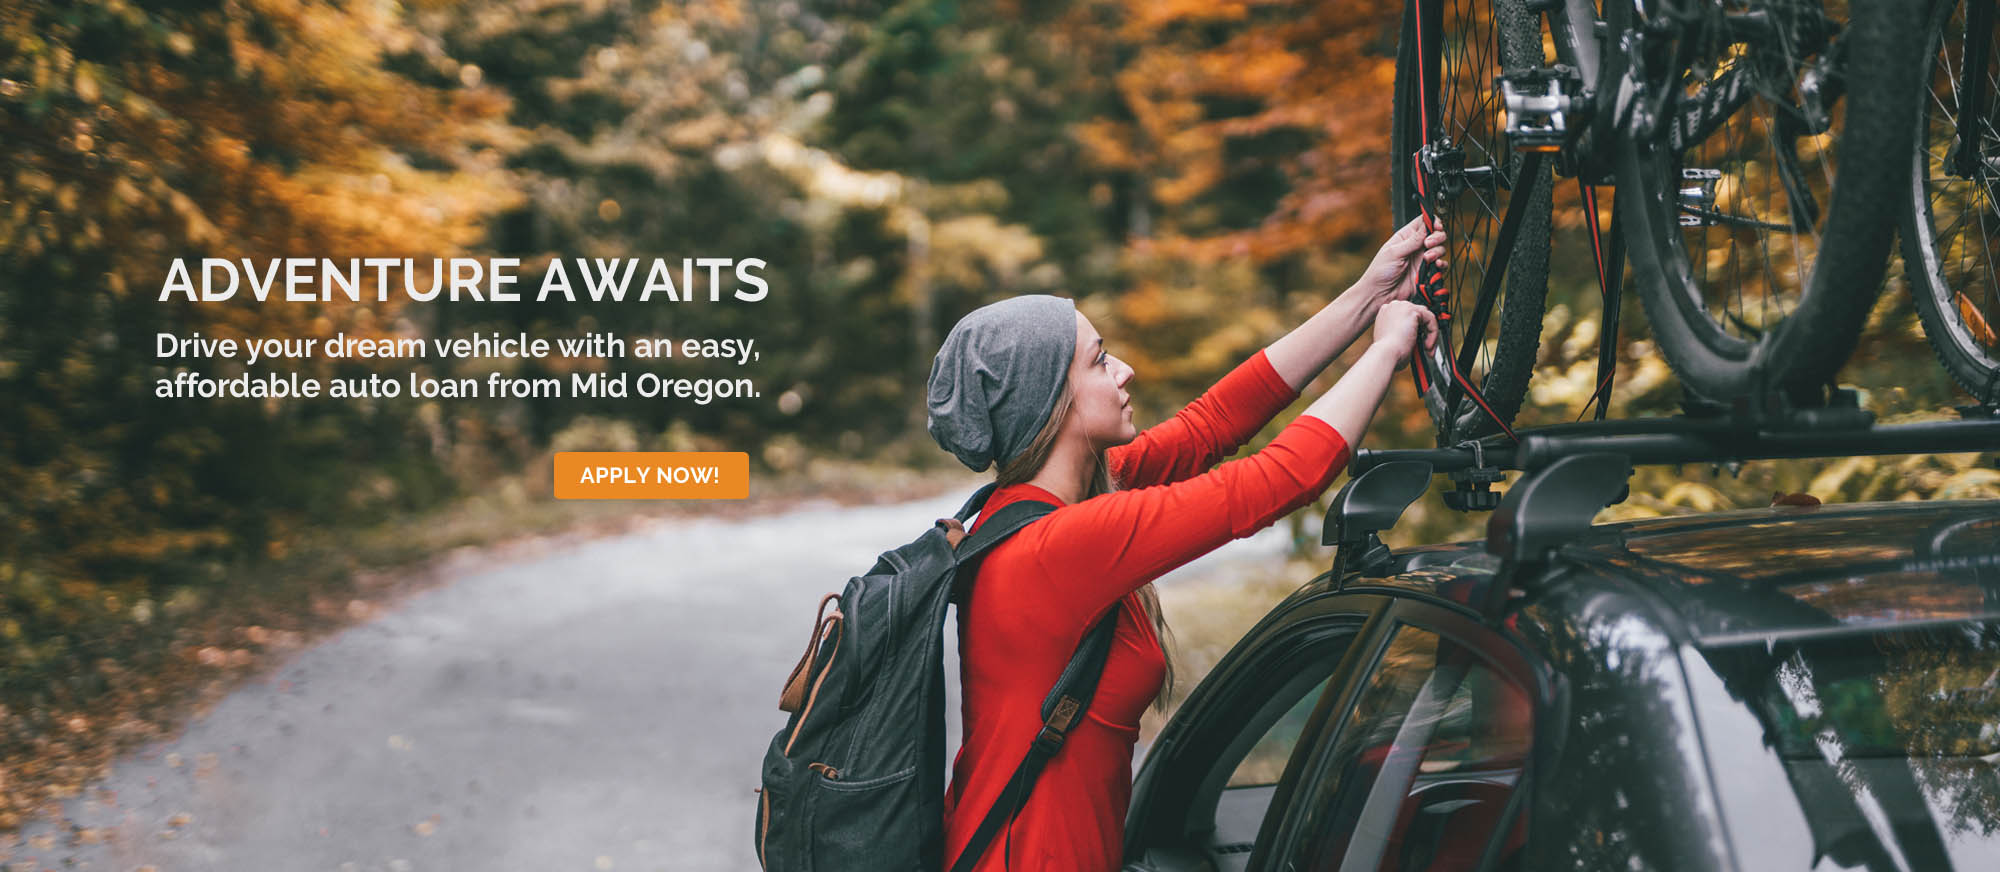 Auto loans, Woman with bike on roof of vehicle outdoors